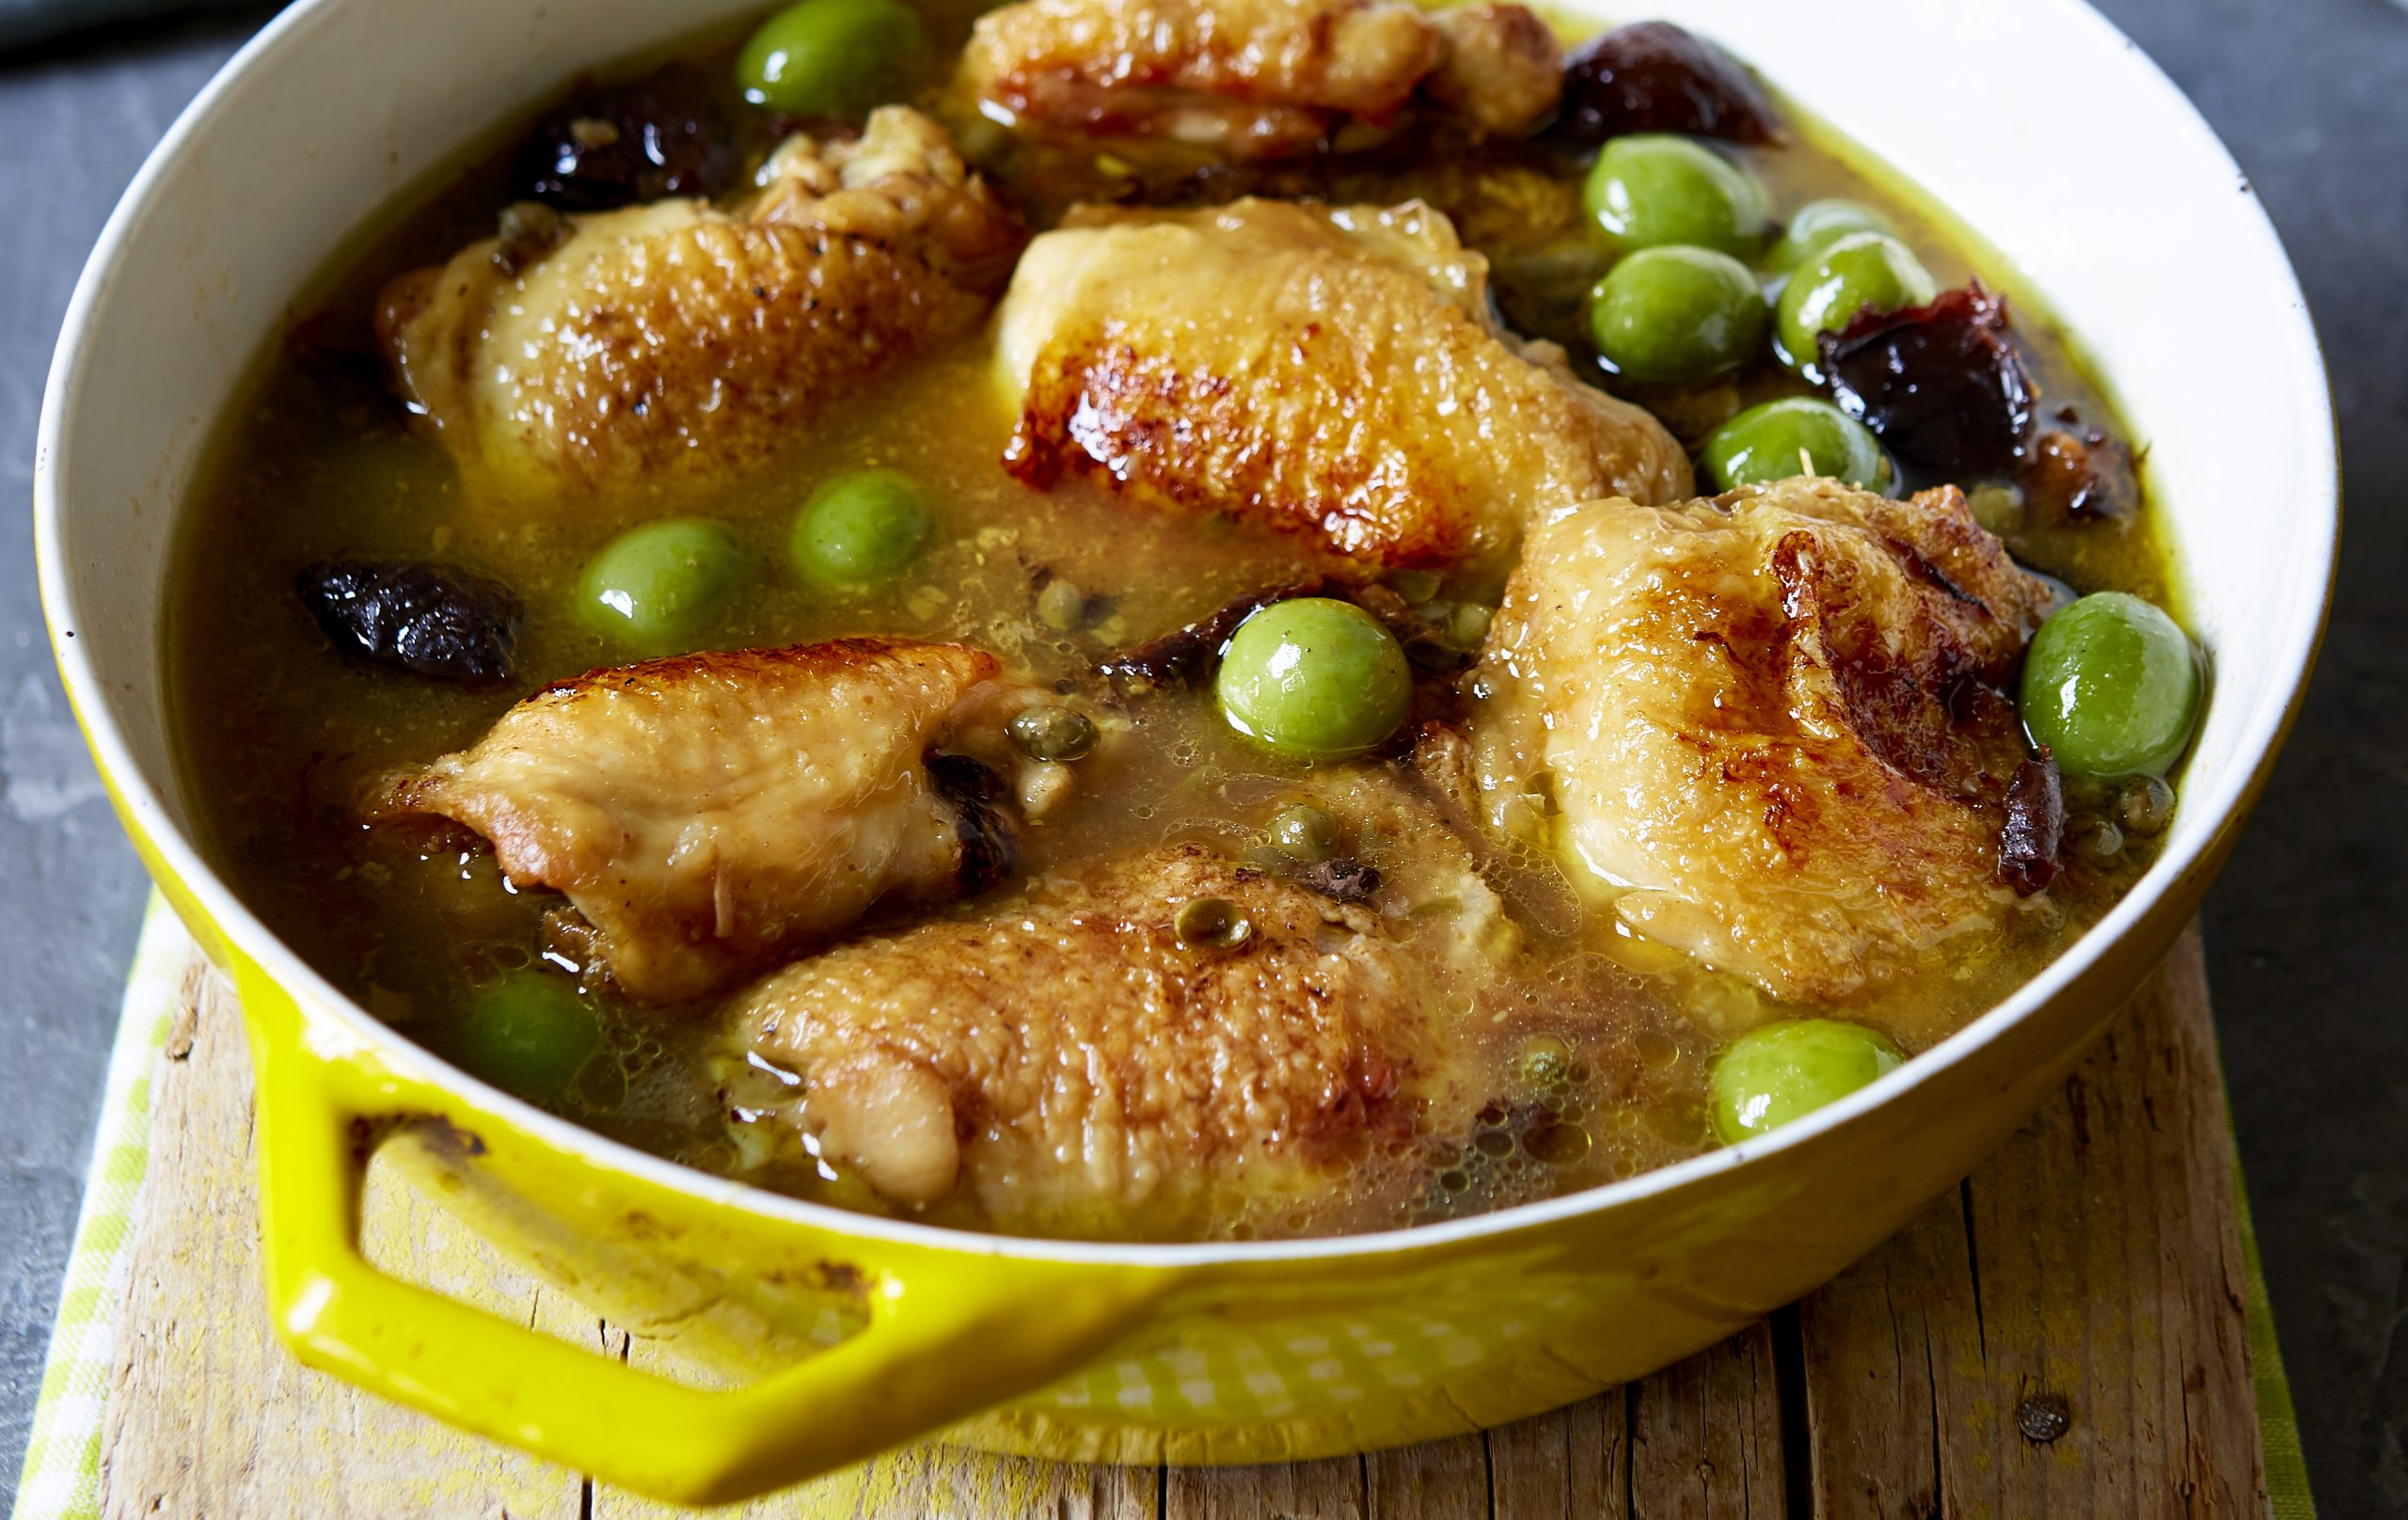 If you need a midweek family dinner then give this chicken with prunes recipe a try